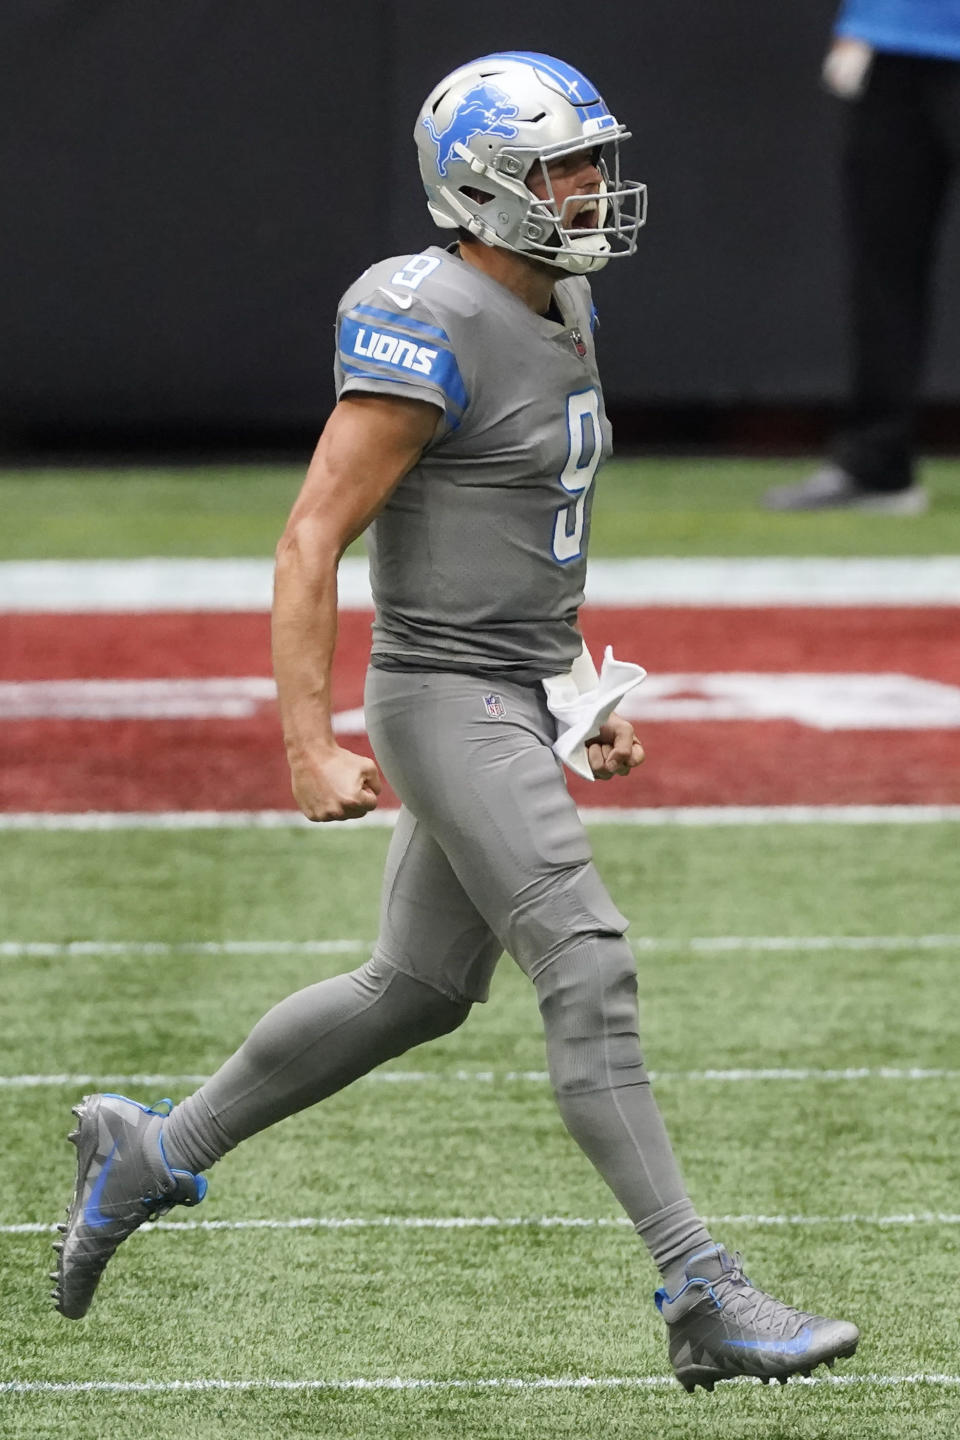 Detroit Lions quarterback Matthew Stafford (9) celebrates victory during the second half of an NFL football game against the Atlanta Falcons, Sunday, Oct. 25, 2020, in Atlanta. The Detroit Lions won 23-22. (AP Photo/John Bazemore)